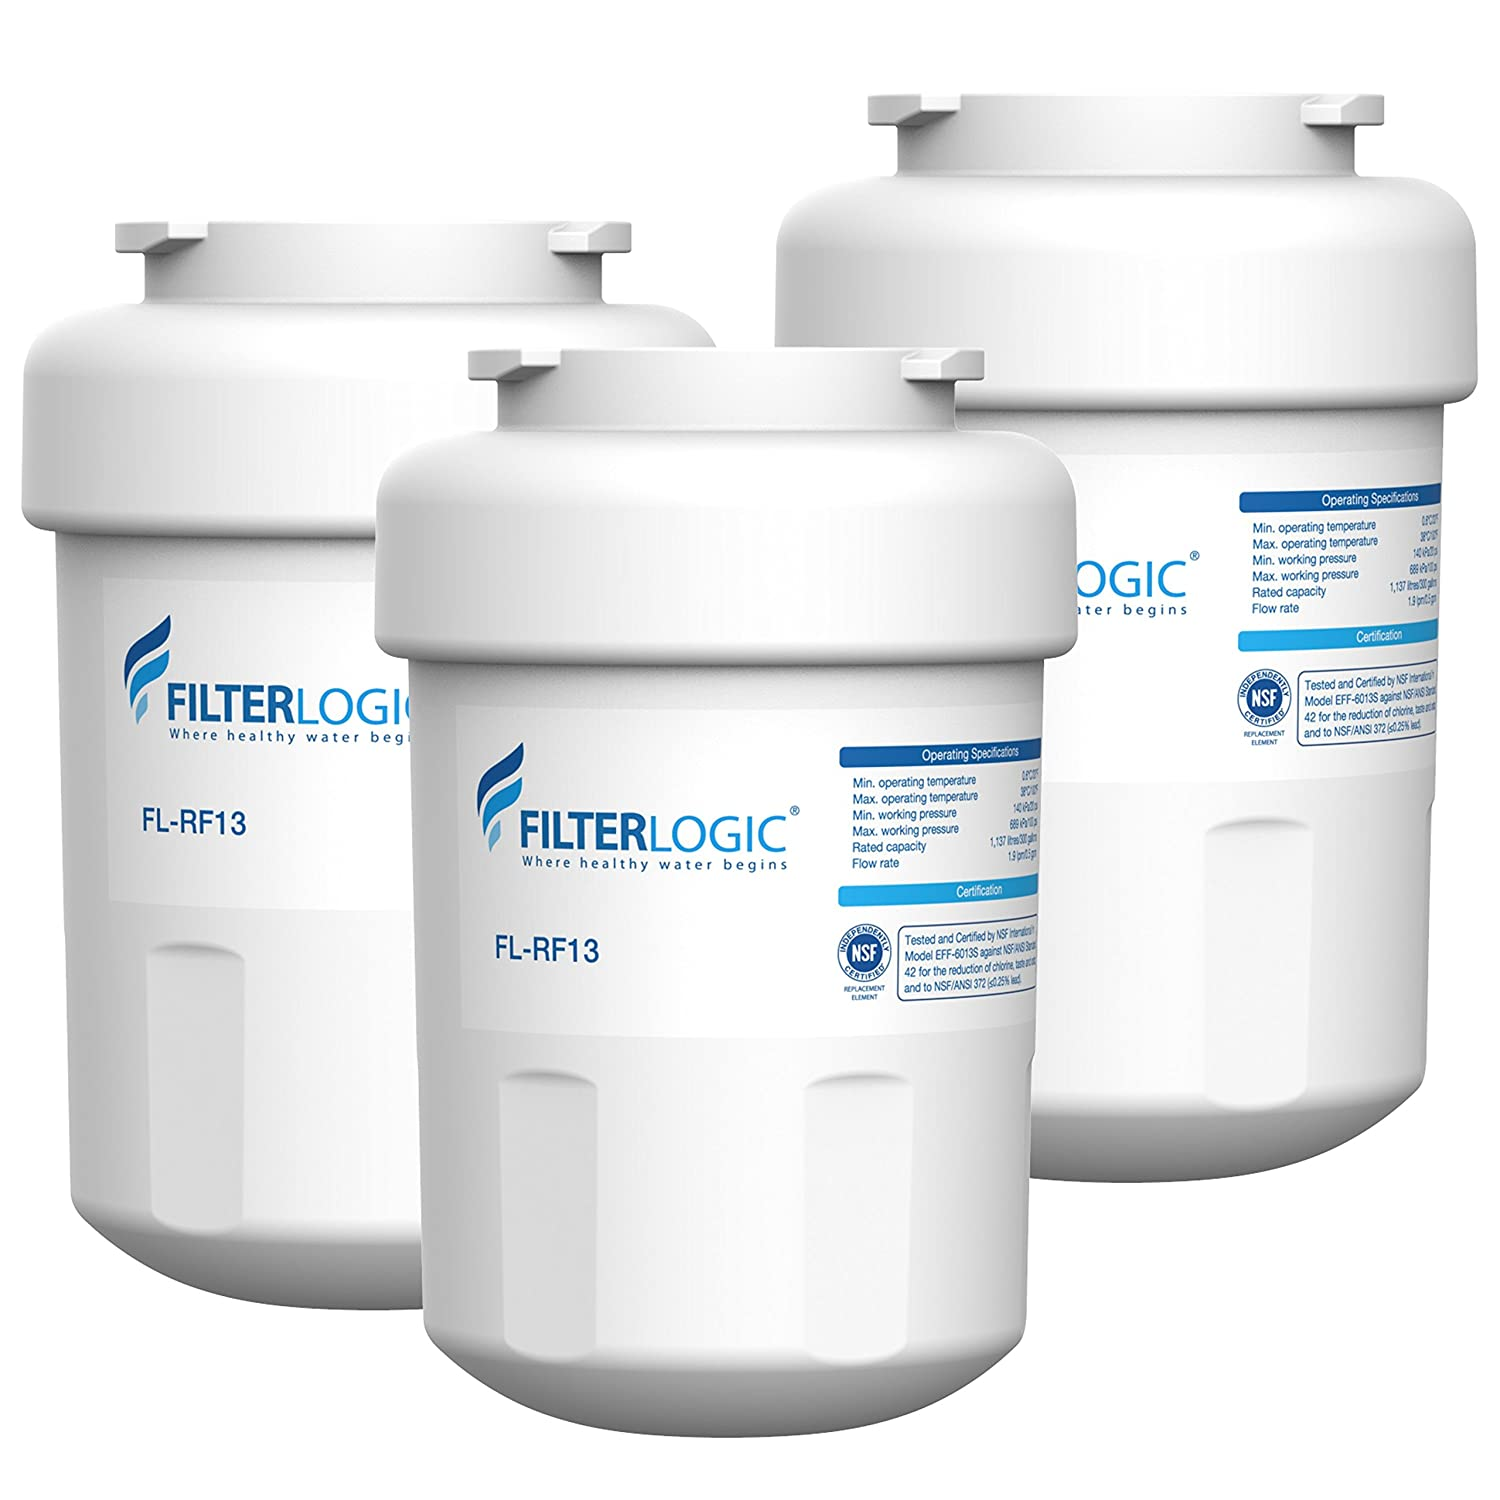 FilterLogic MWF Replacement Refrigerator Water Filter, Compatible with GE MWF, SmartWater, MWFP, MWFA, GWF, HDX FMG-1, WFC1201, GSE25GSHECSS, PC75009, RWF1060, 197D6321P006 FL-RF13